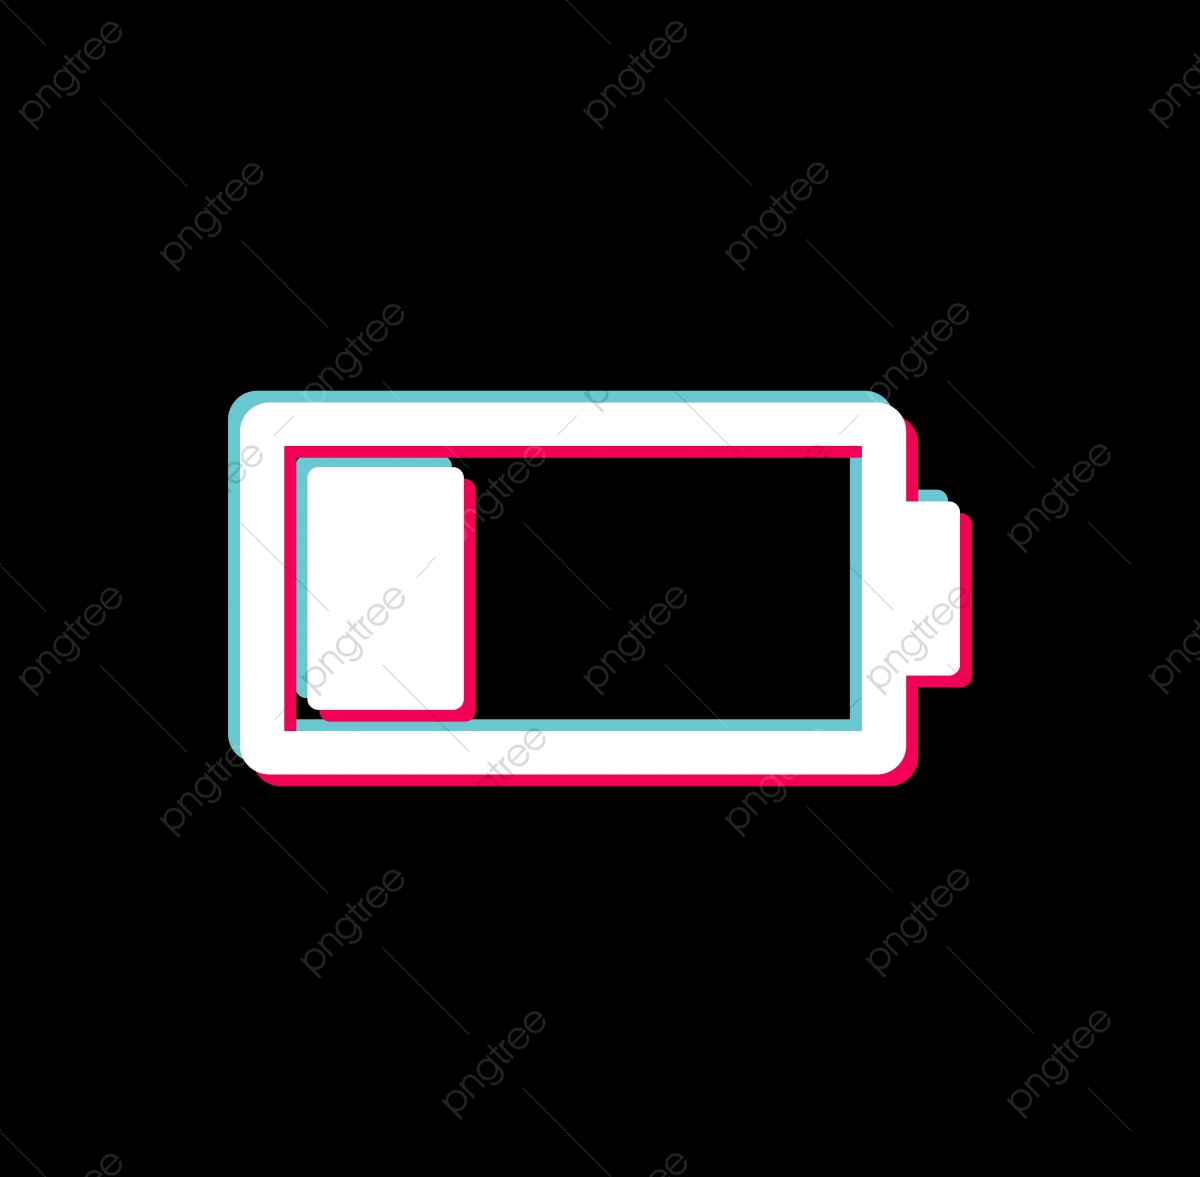 Low Battery Png Images Vector And Psd Files Free Download On Pngtree